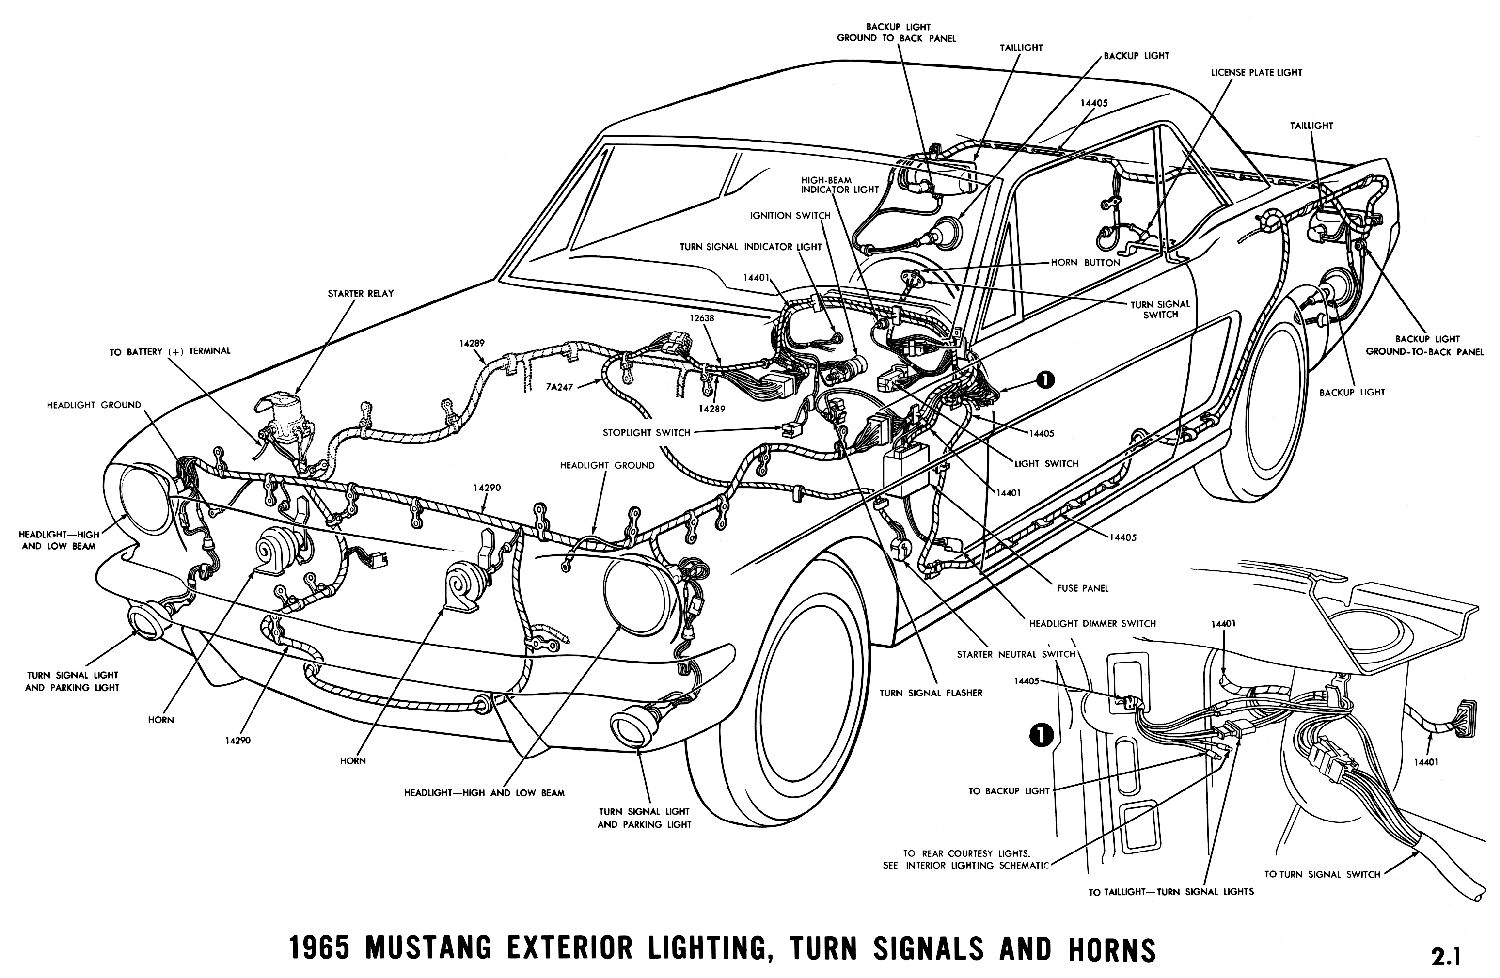 1965d 1965 mustang wiring diagrams average joe restoration 1969 mustang alternator wiring diagram at n-0.co